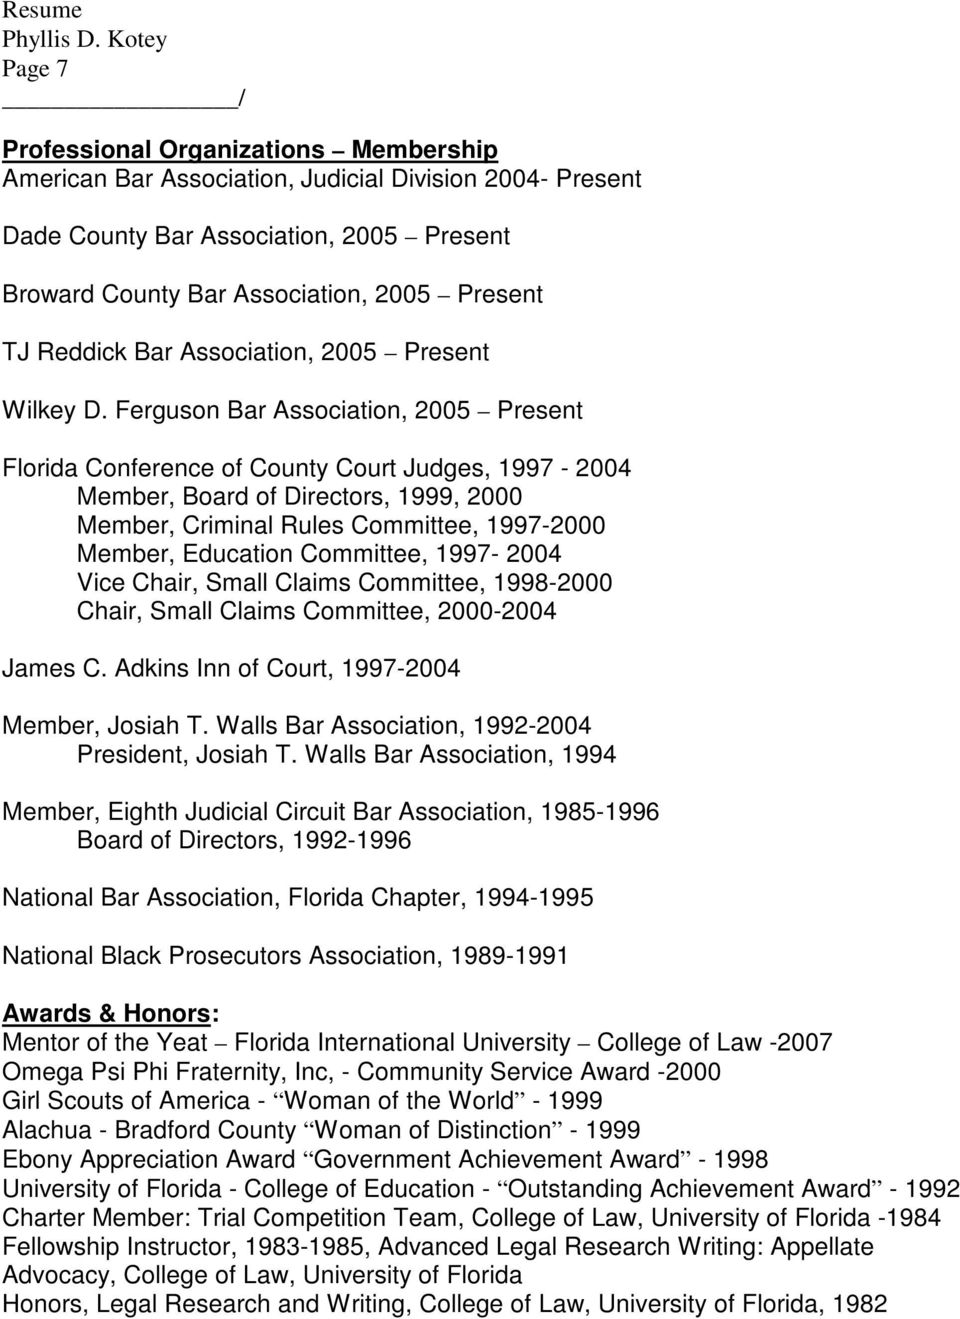 Ferguson Bar Association, 2005 Present Florida Conference of County Court Judges, 1997-2004 Member, Board of Directors, 1999, 2000 Member, Criminal Rules Committee, 1997-2000 Member, Education